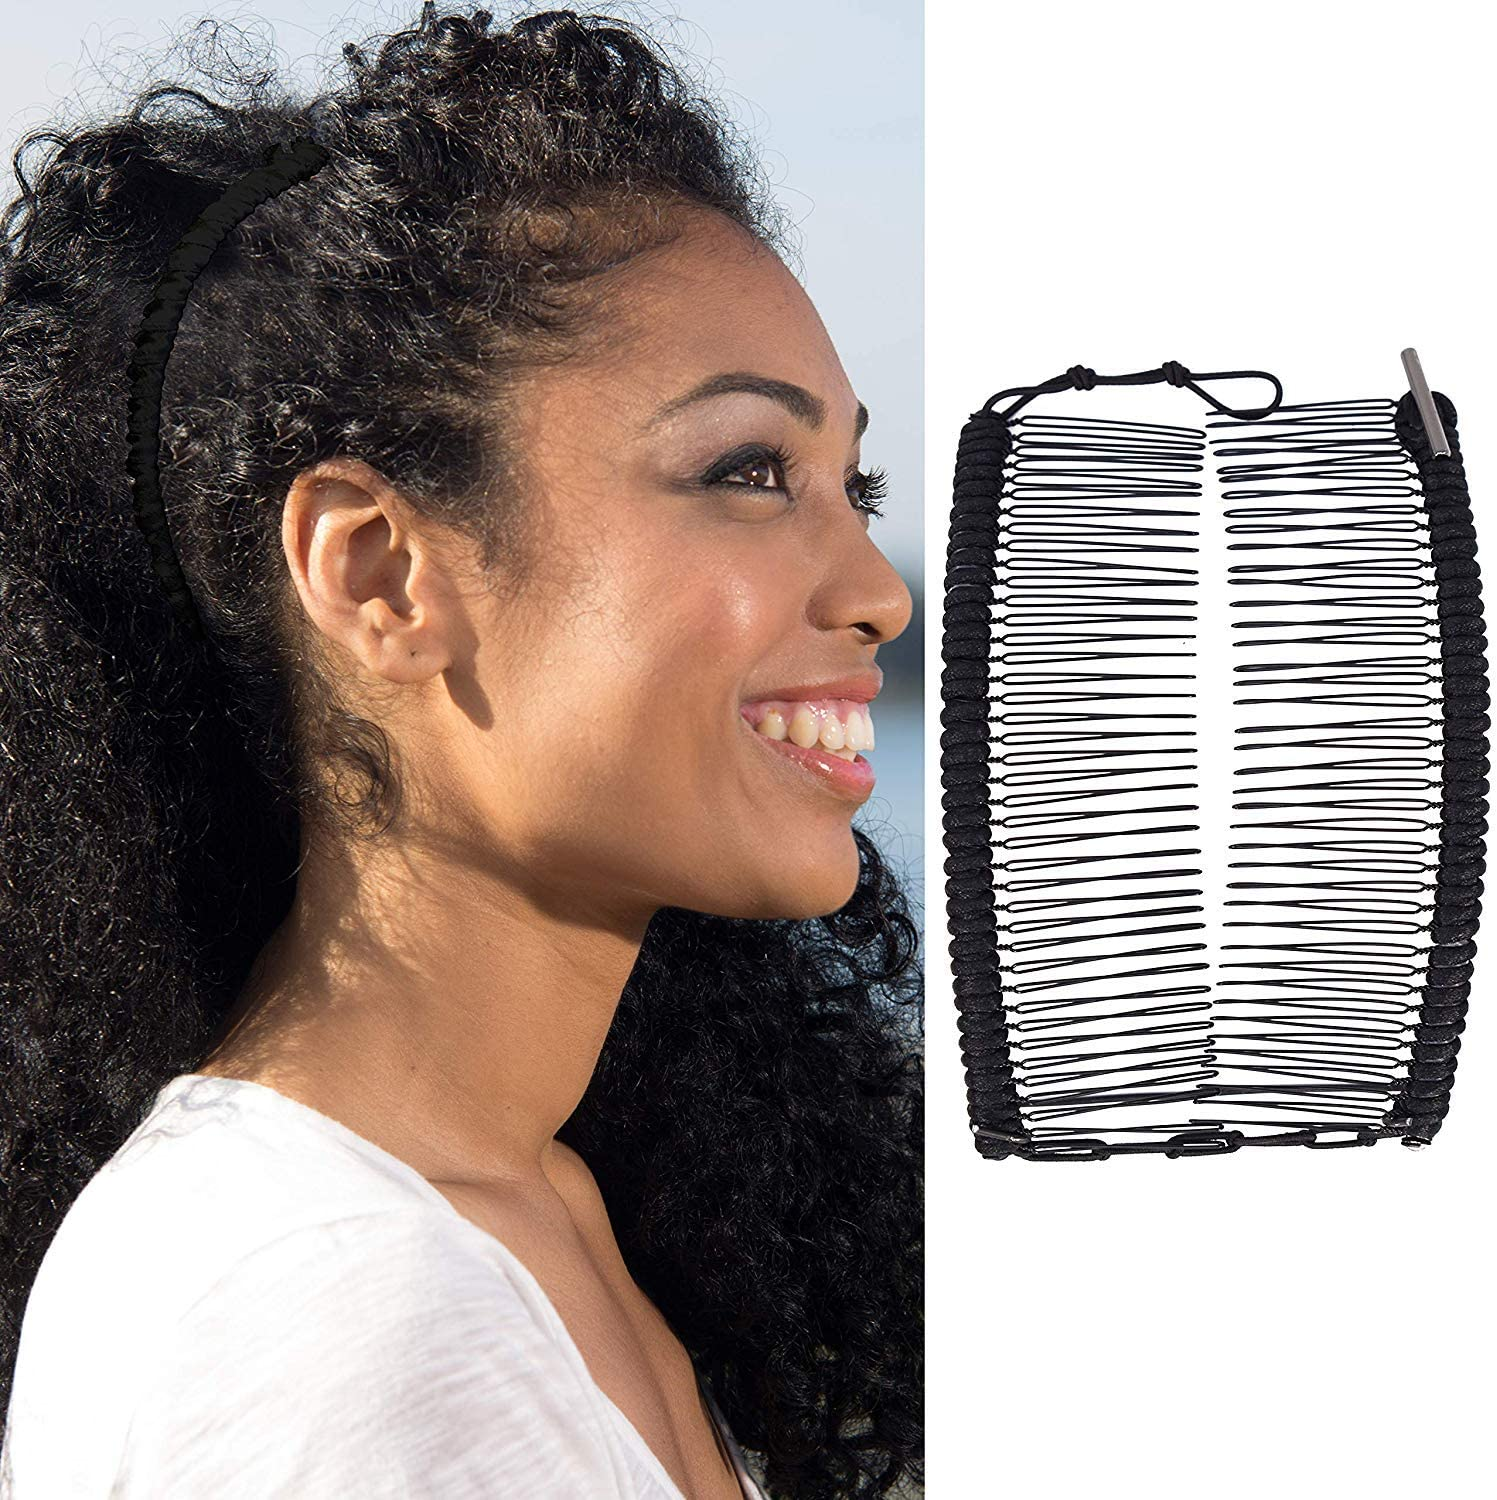 MLZYKYJZ Large Banana Hair Clip Double Comb Banana Clip   Vintage Clips  Hair Accessories for Thick, Curly Hair